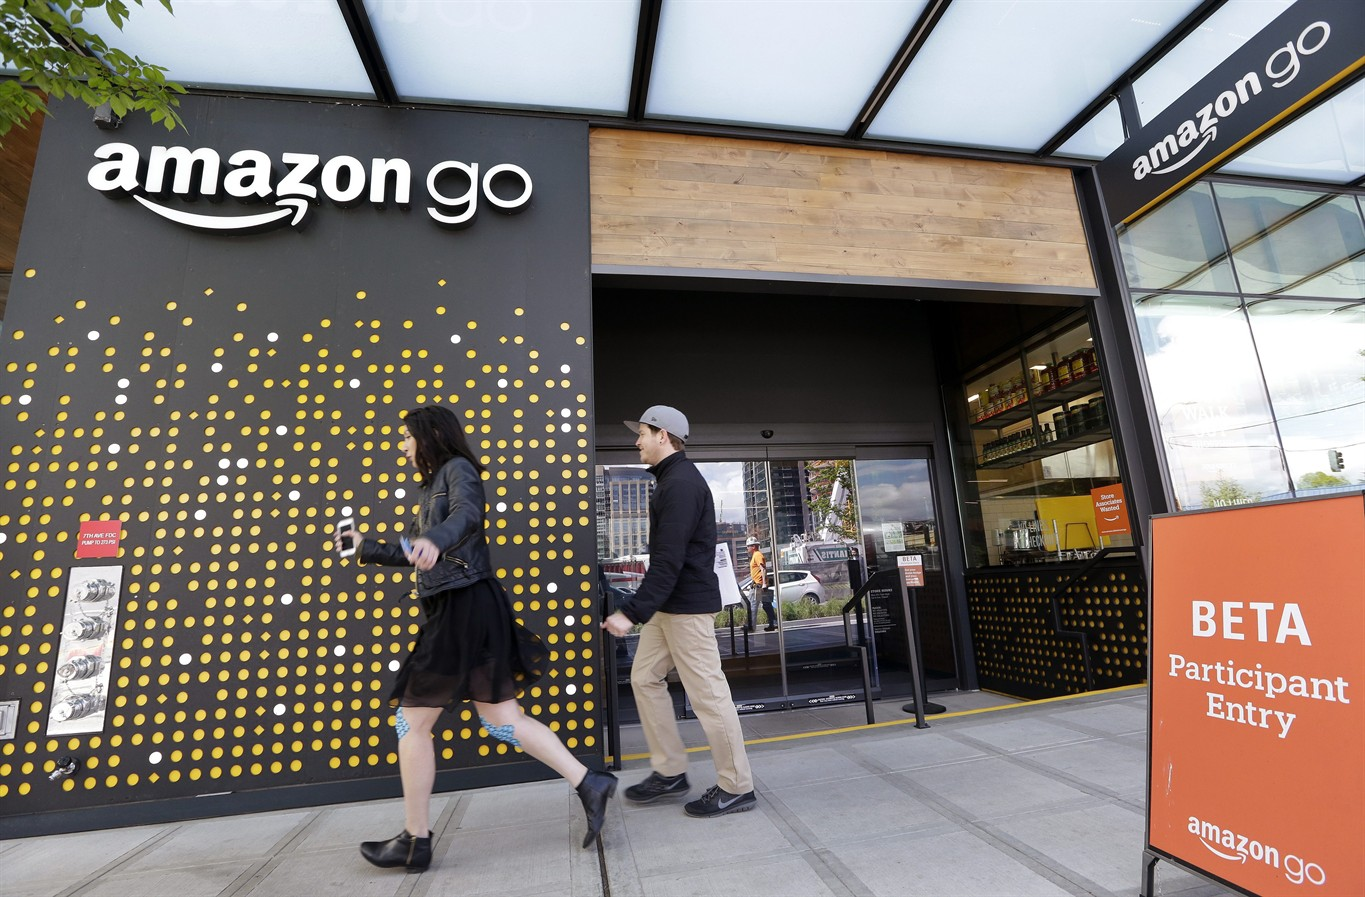 Amazon Go finally opens to public: A supermarket with no checkouts